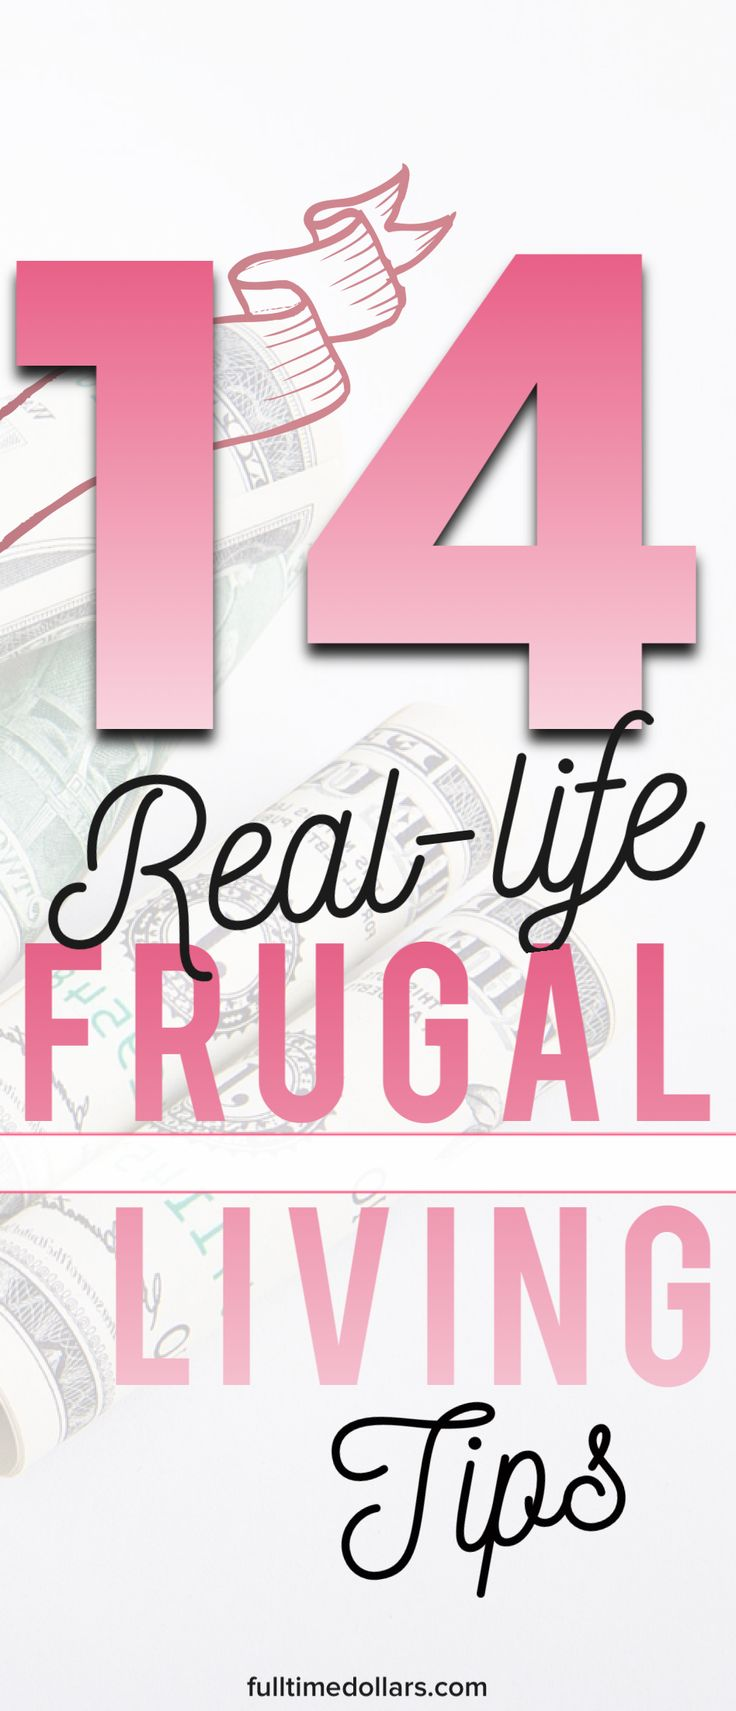 How would you implement frugal living to save more money? Is it the old car? Coffee at home? Learn more about my frugal measures that you can use too! | Frugality | Managing money | Lifestyle change | Frugal living tips |